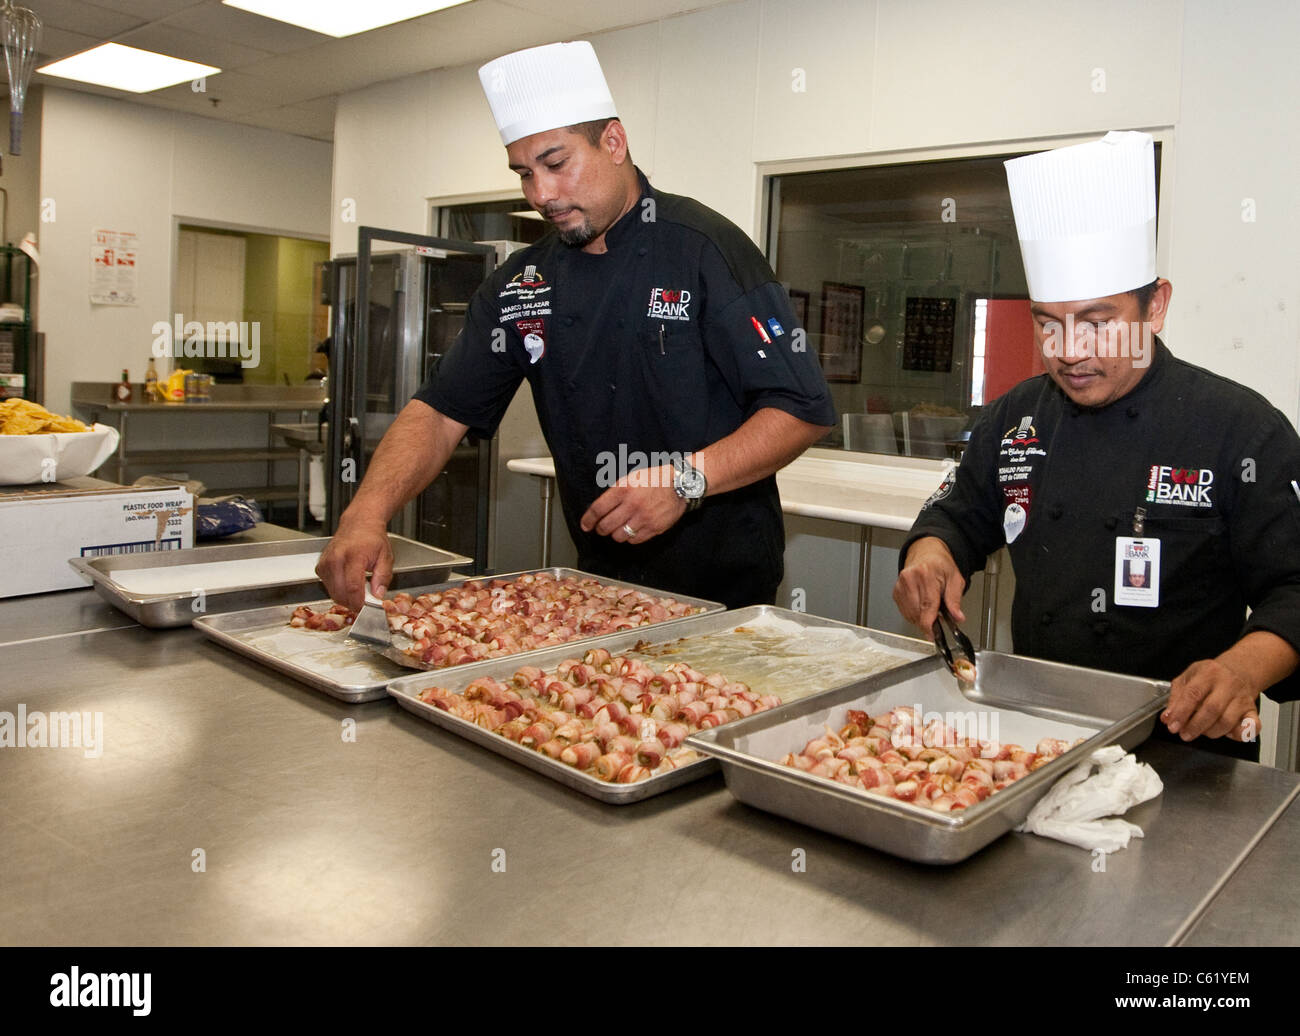 Chefs work in the kitchen of the San Antonio Food Bank in San